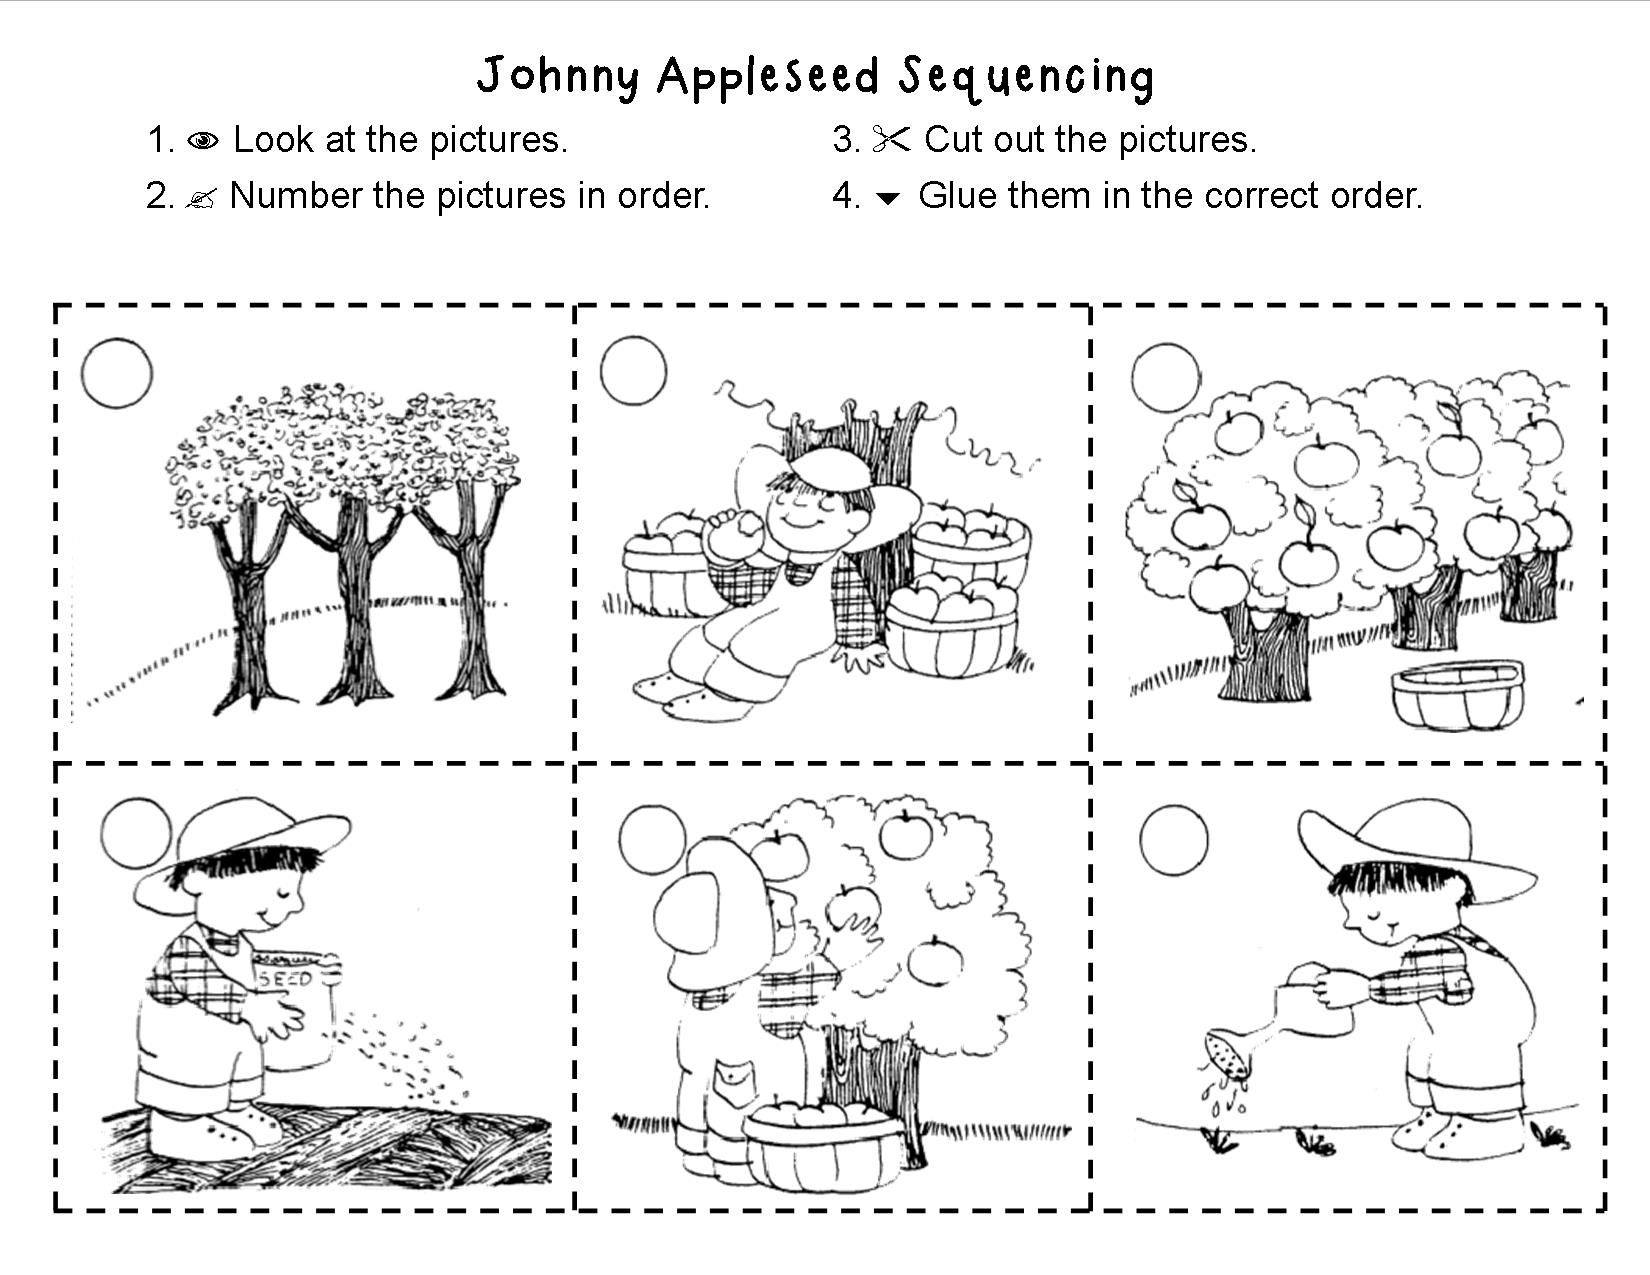 Johnny Appleseed Sequencing